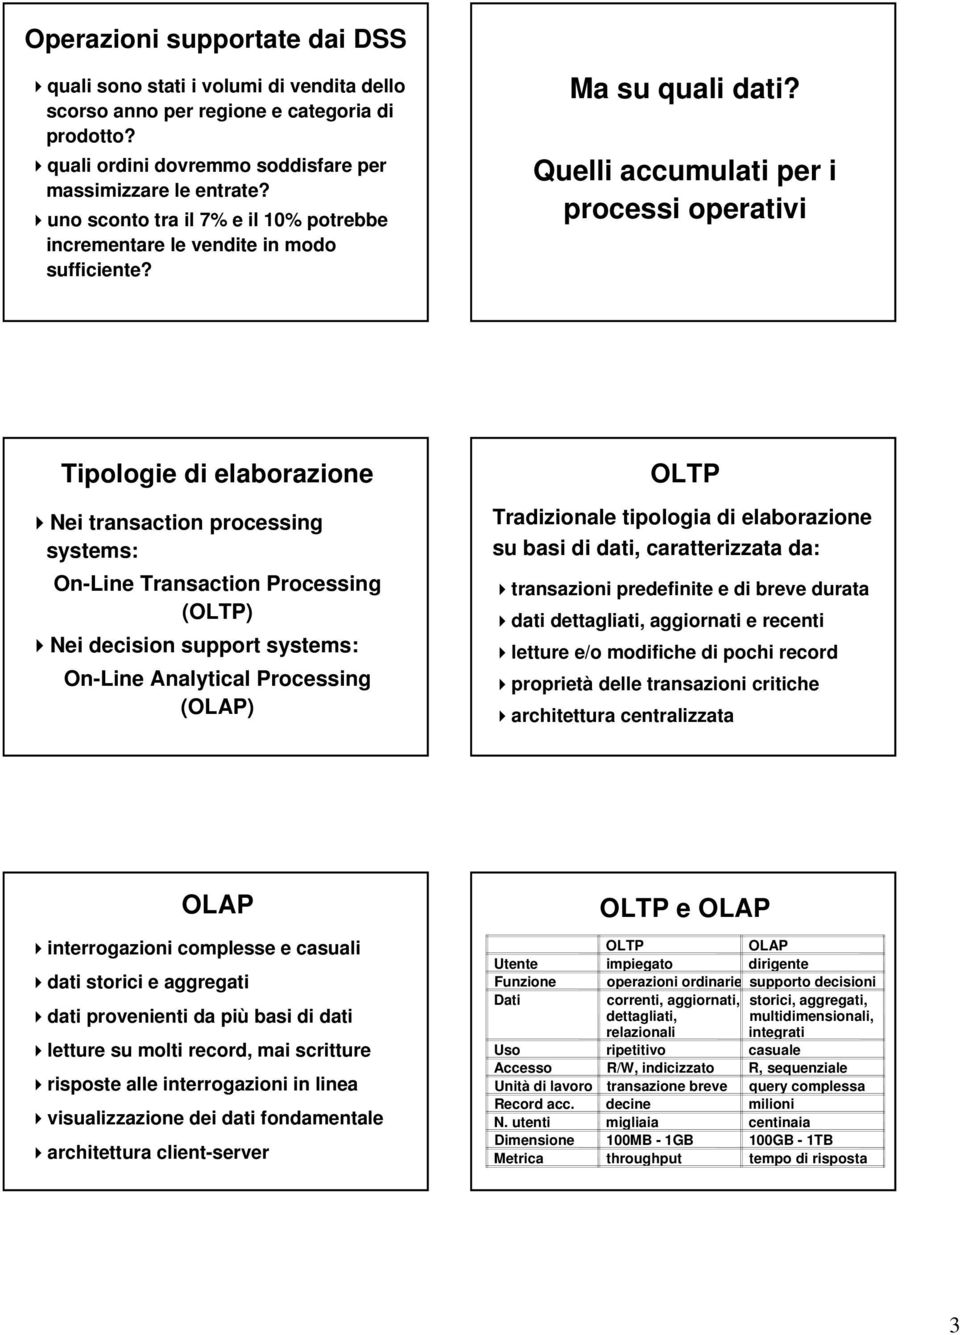 Quelli accumulati per i processi operativi Tipologie di elaborazione Nei transaction processing systems: On-Line Transaction Processing (OLTP) Nei decision support systems: On-Line Analytical